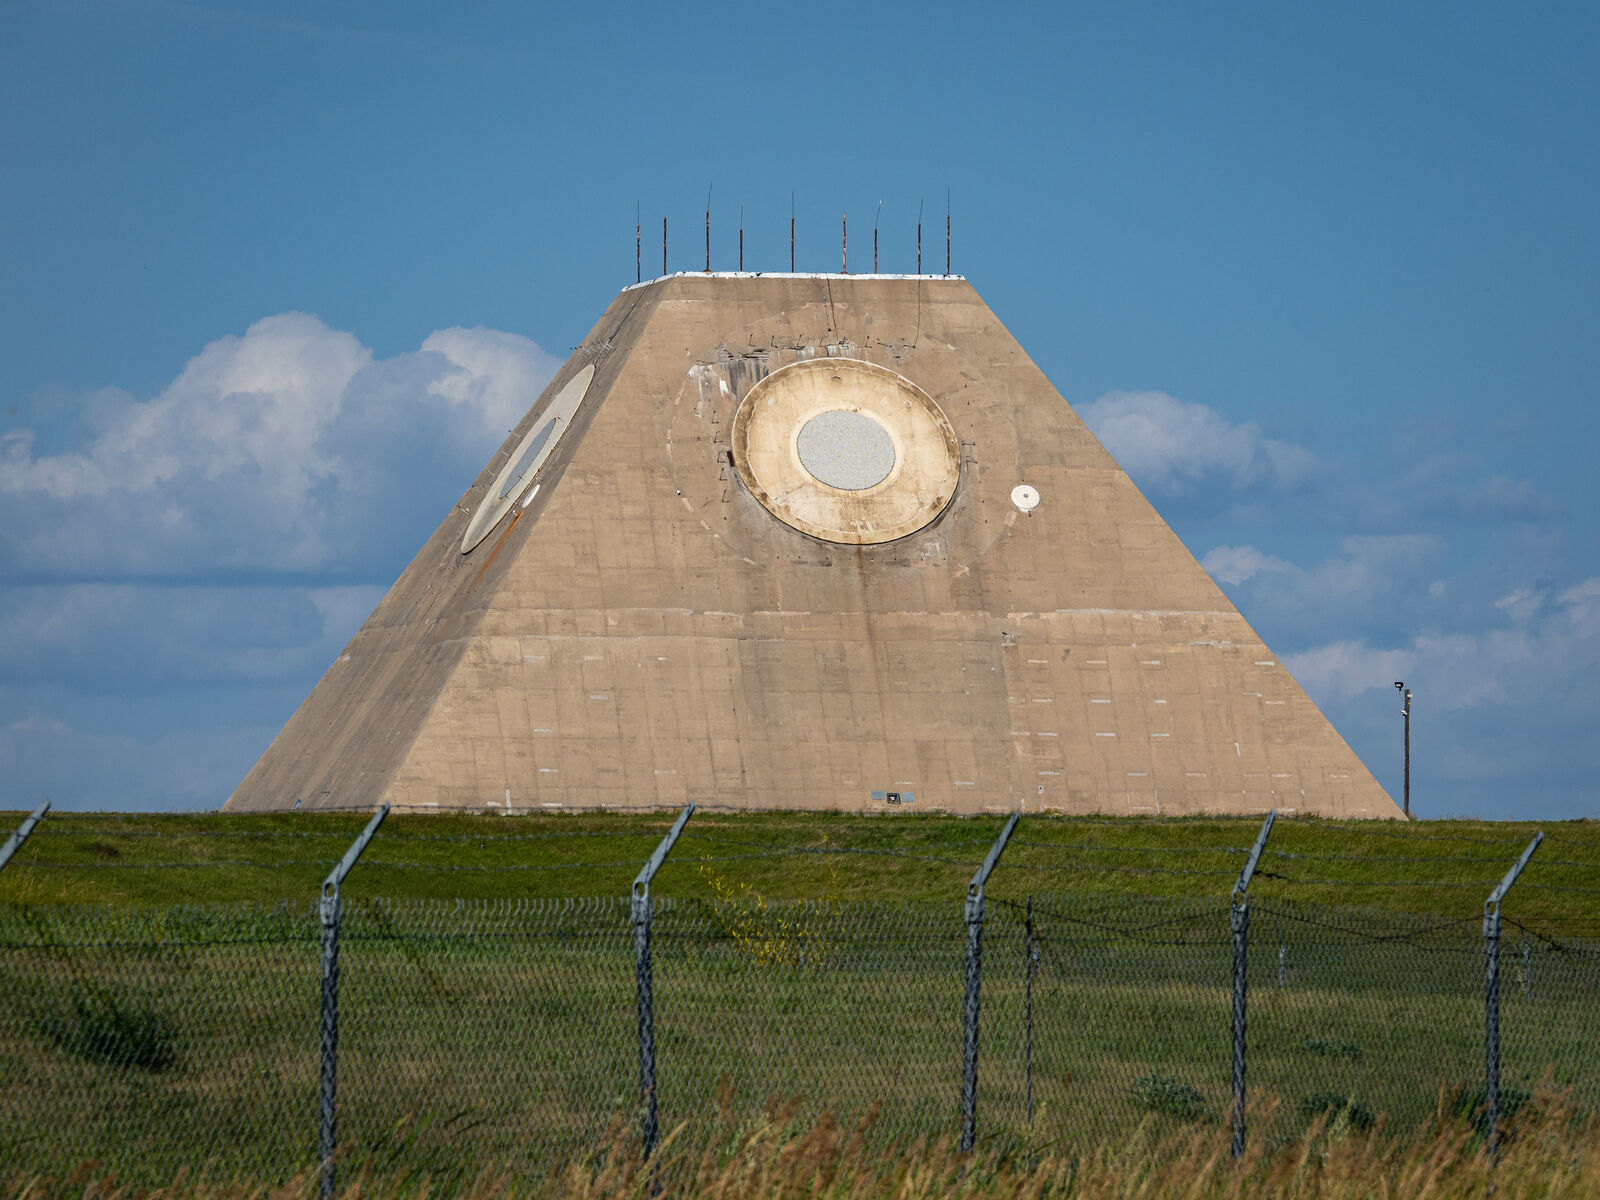 The Missile Site Radar (MSR), one component of the Stanley R. Mickelsen Safeguard Complex.